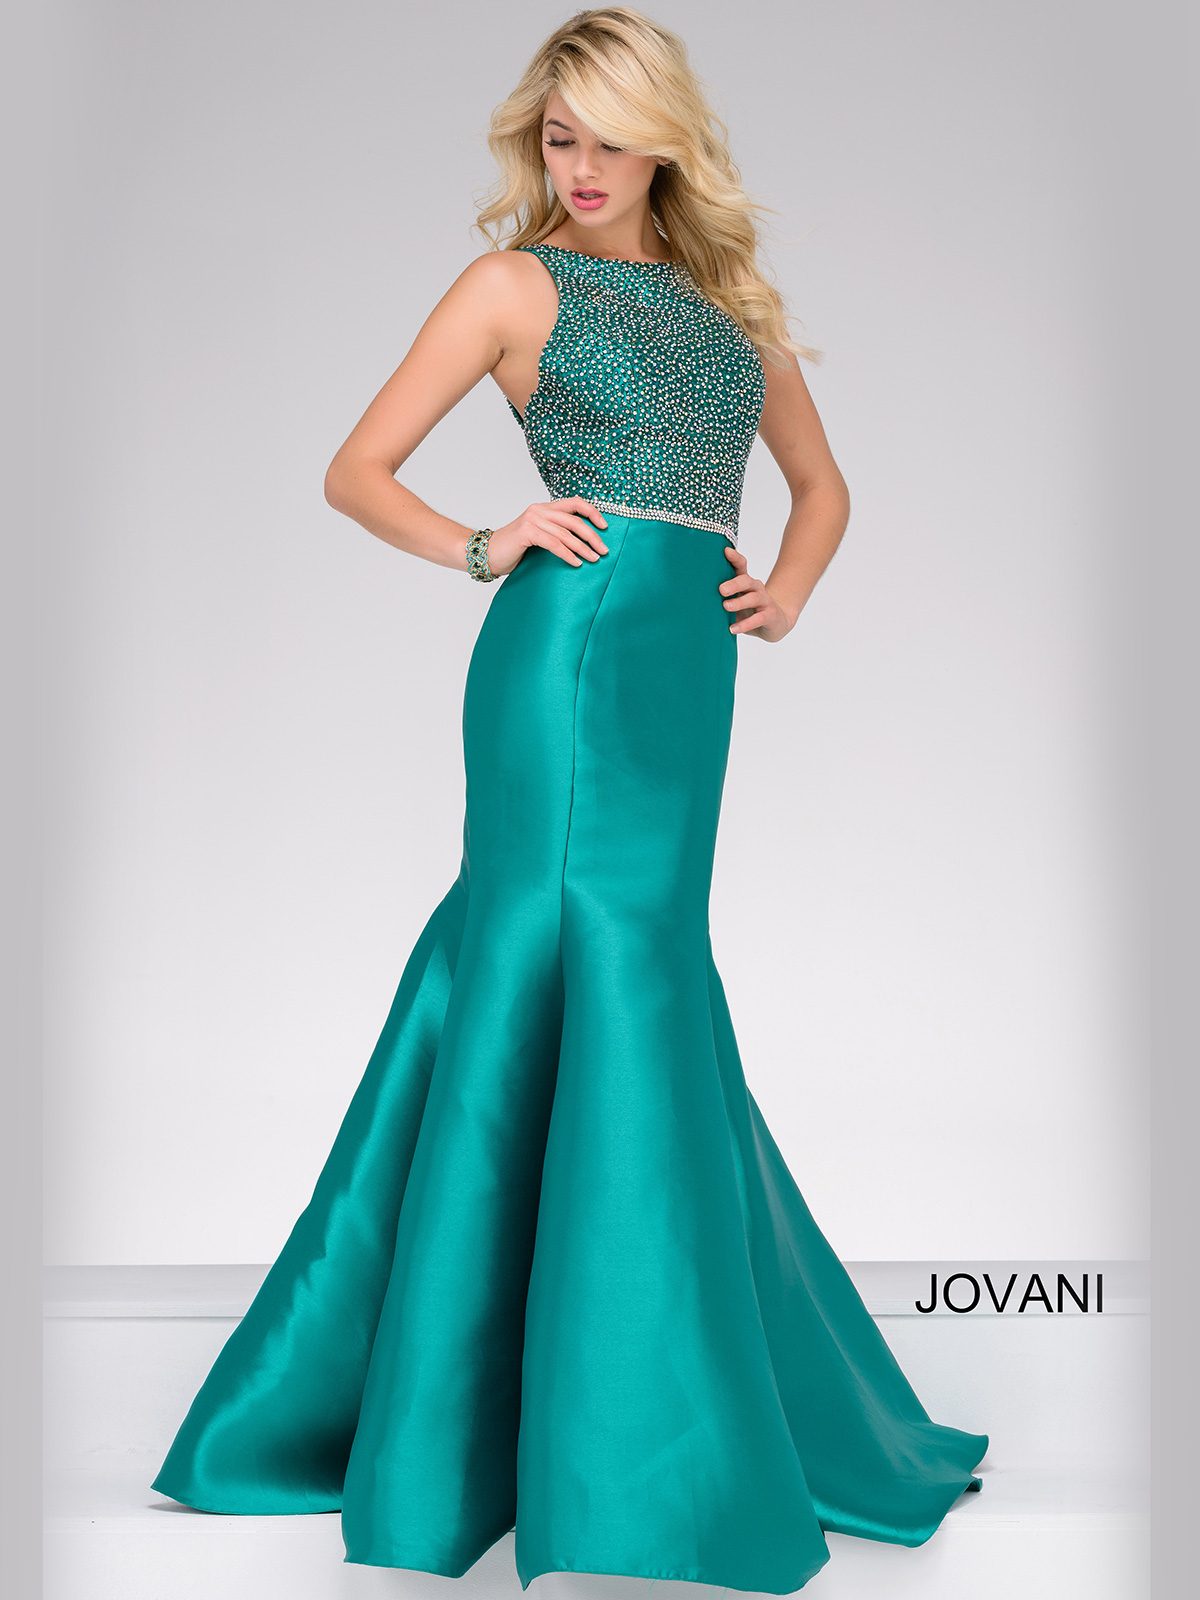 Jovani 42414 Trumpet Fitted Pageant Dress|PageantDesigns.com